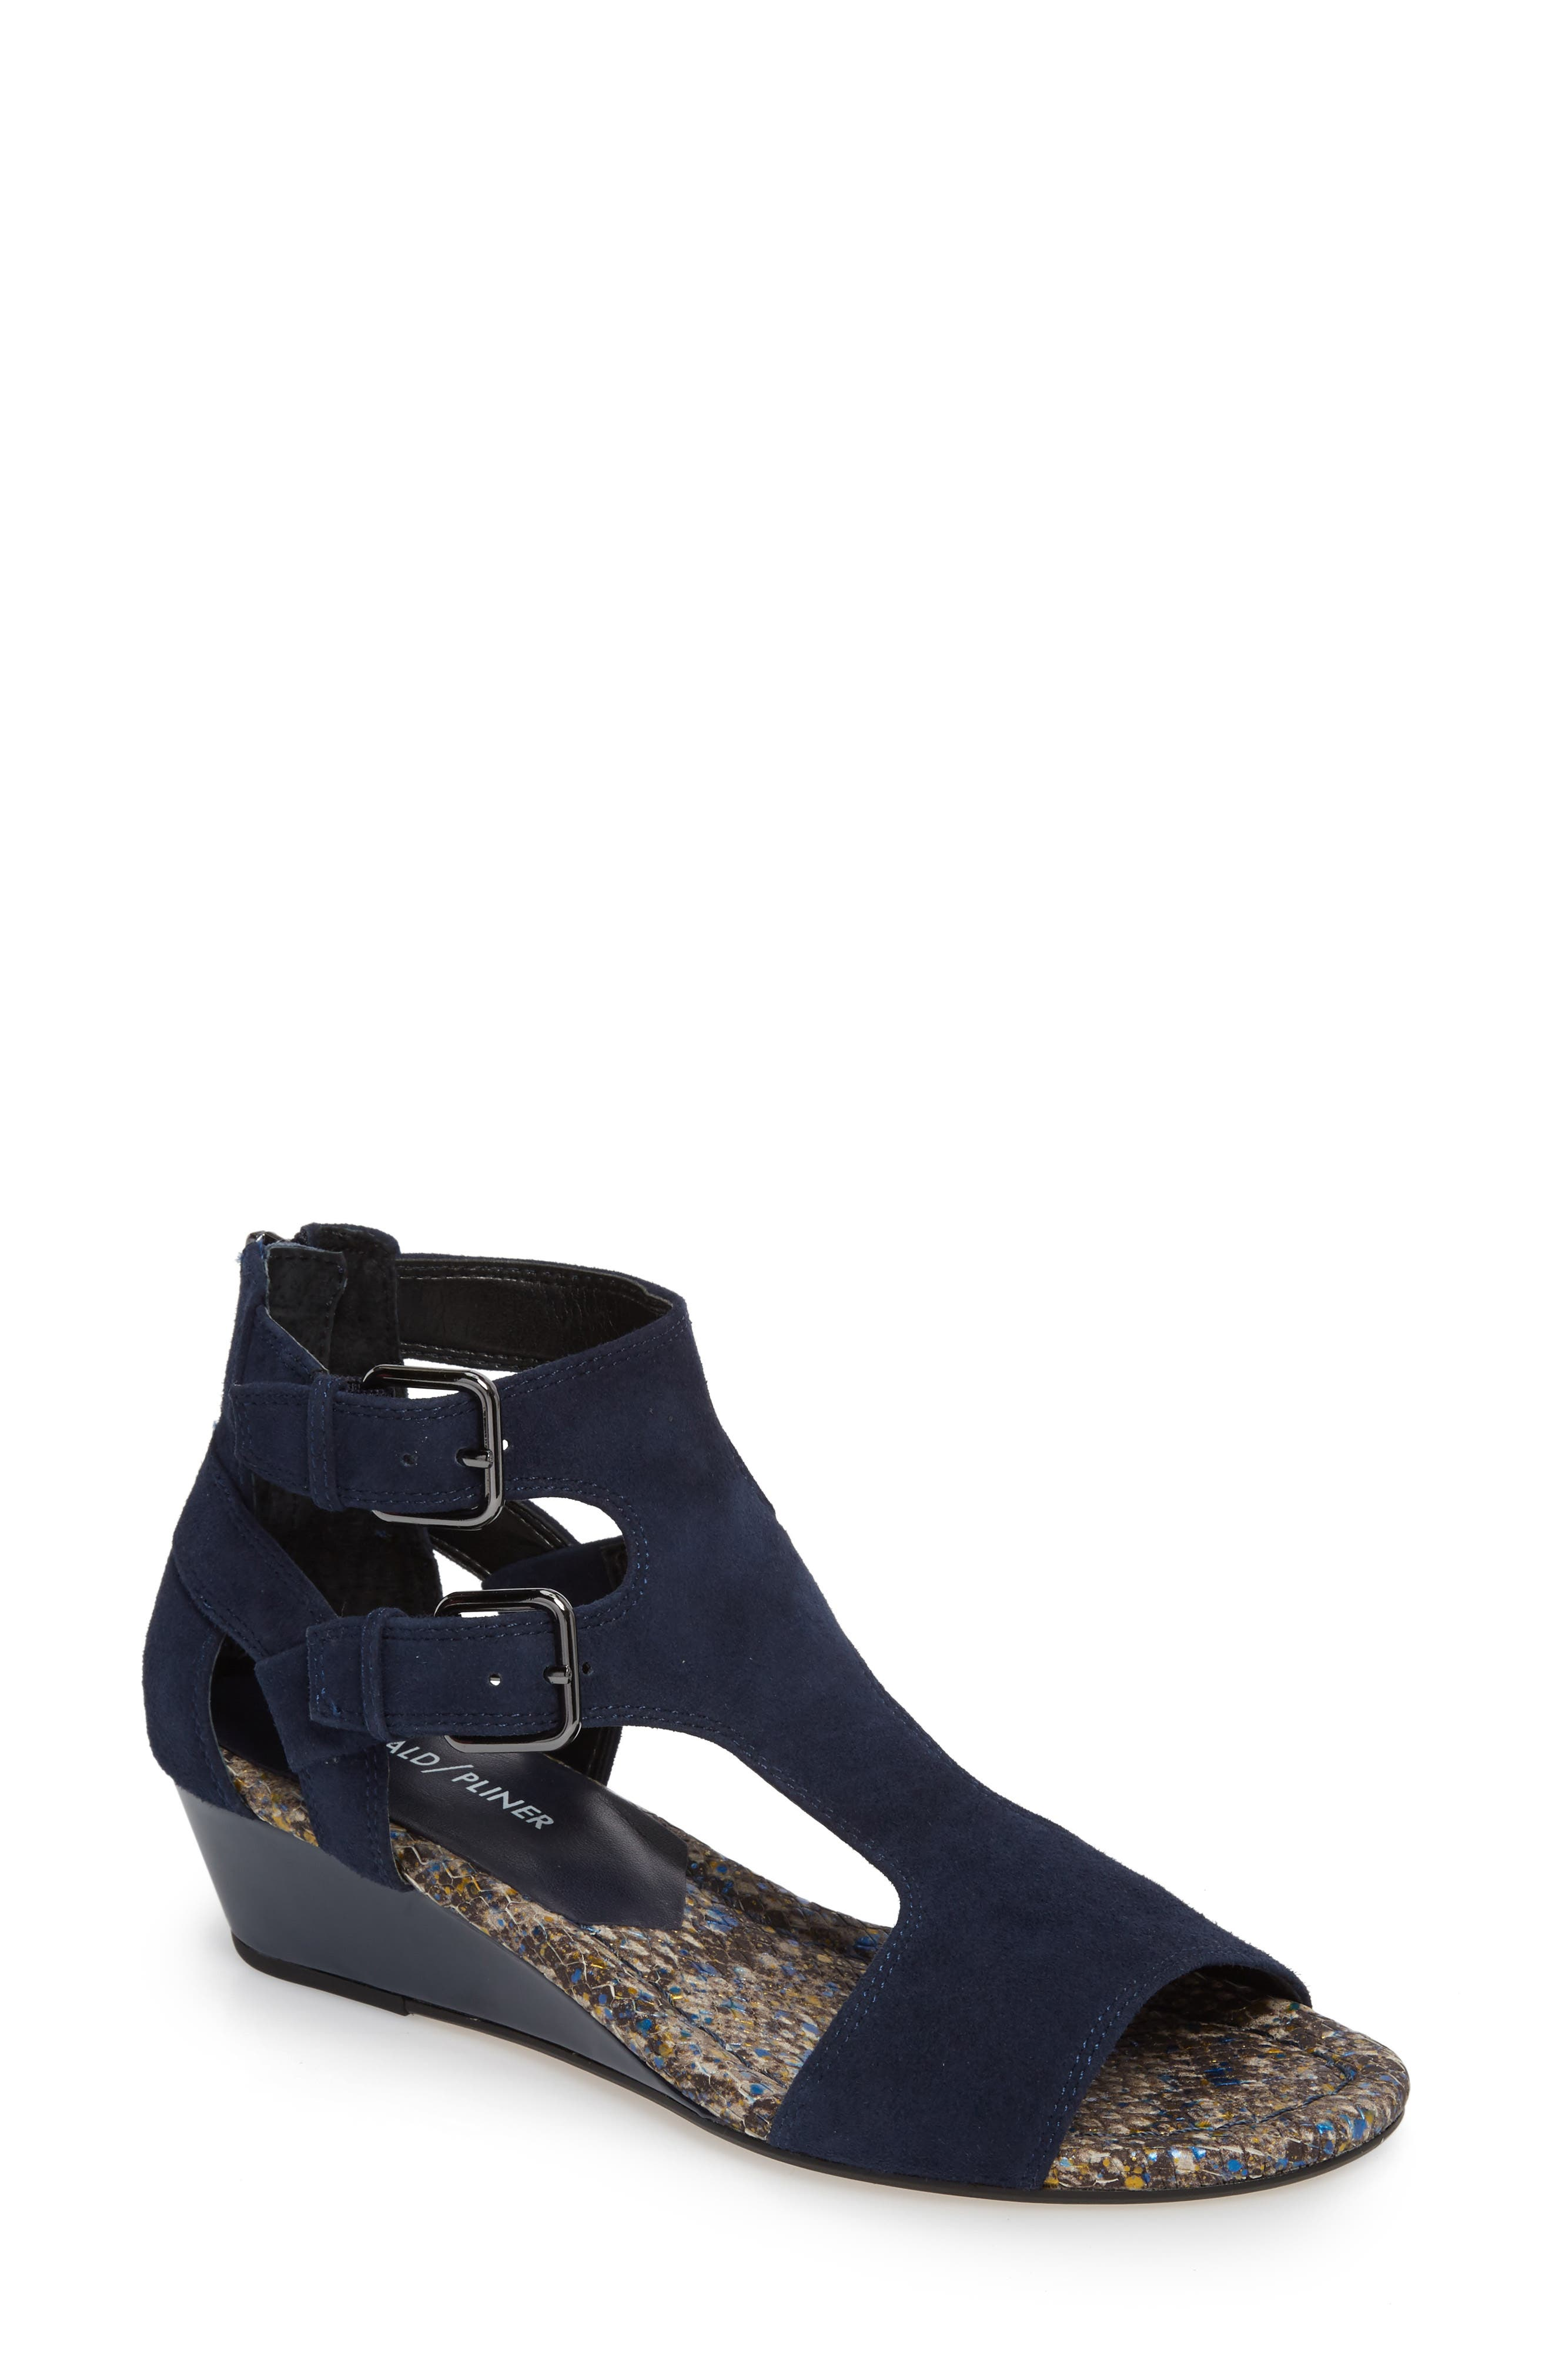 Main Image - Donald Pliner Eden II Wedge Sandal (Women)